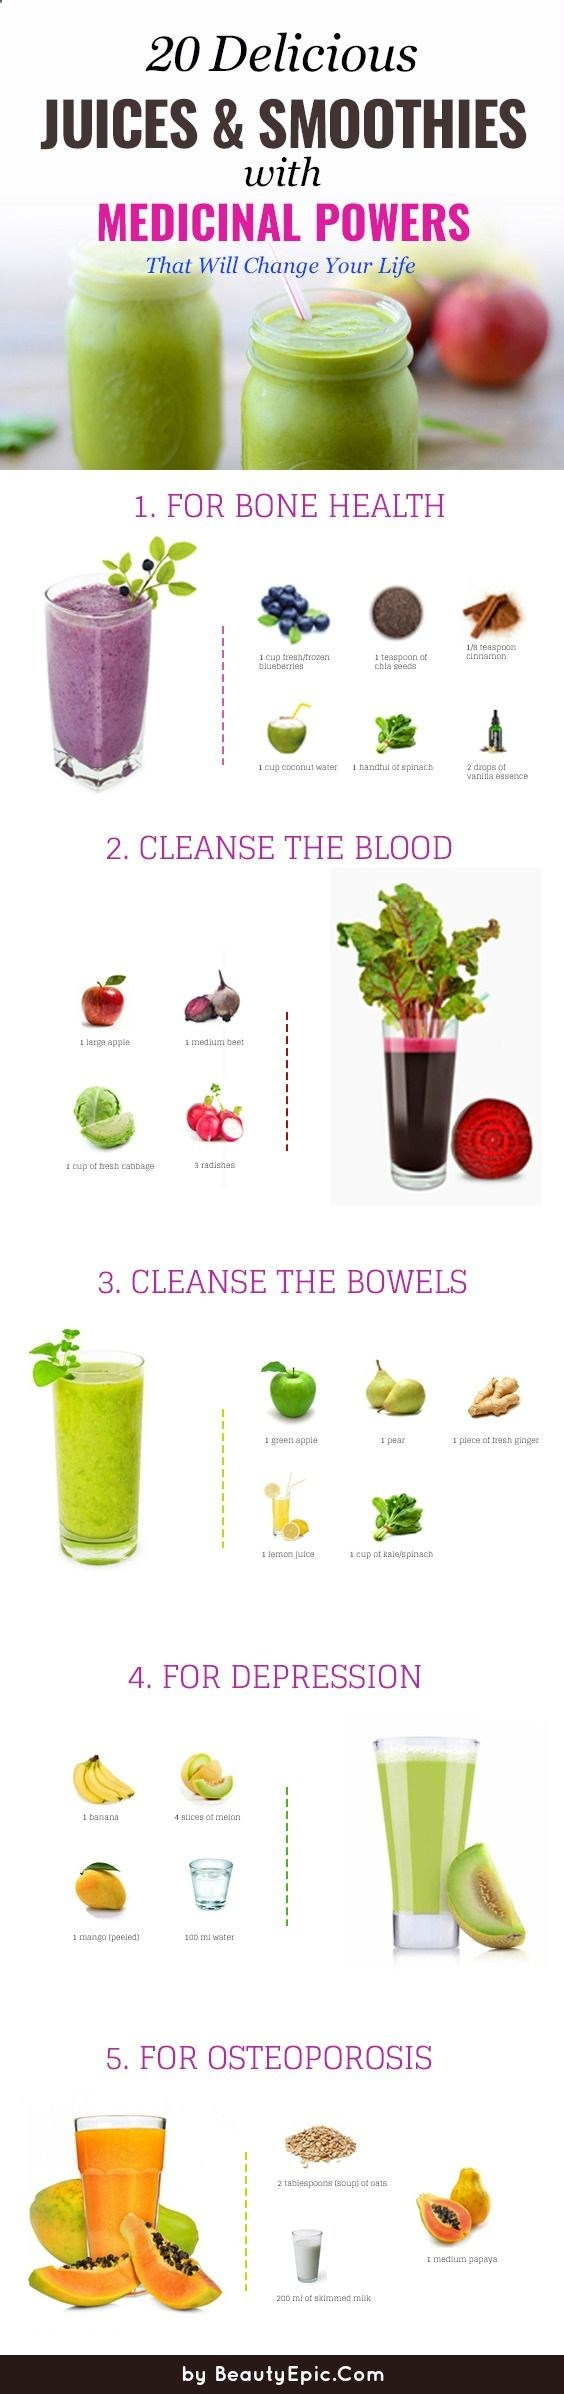 No matter who you are or what your health goals, introduce juices and smoothies…